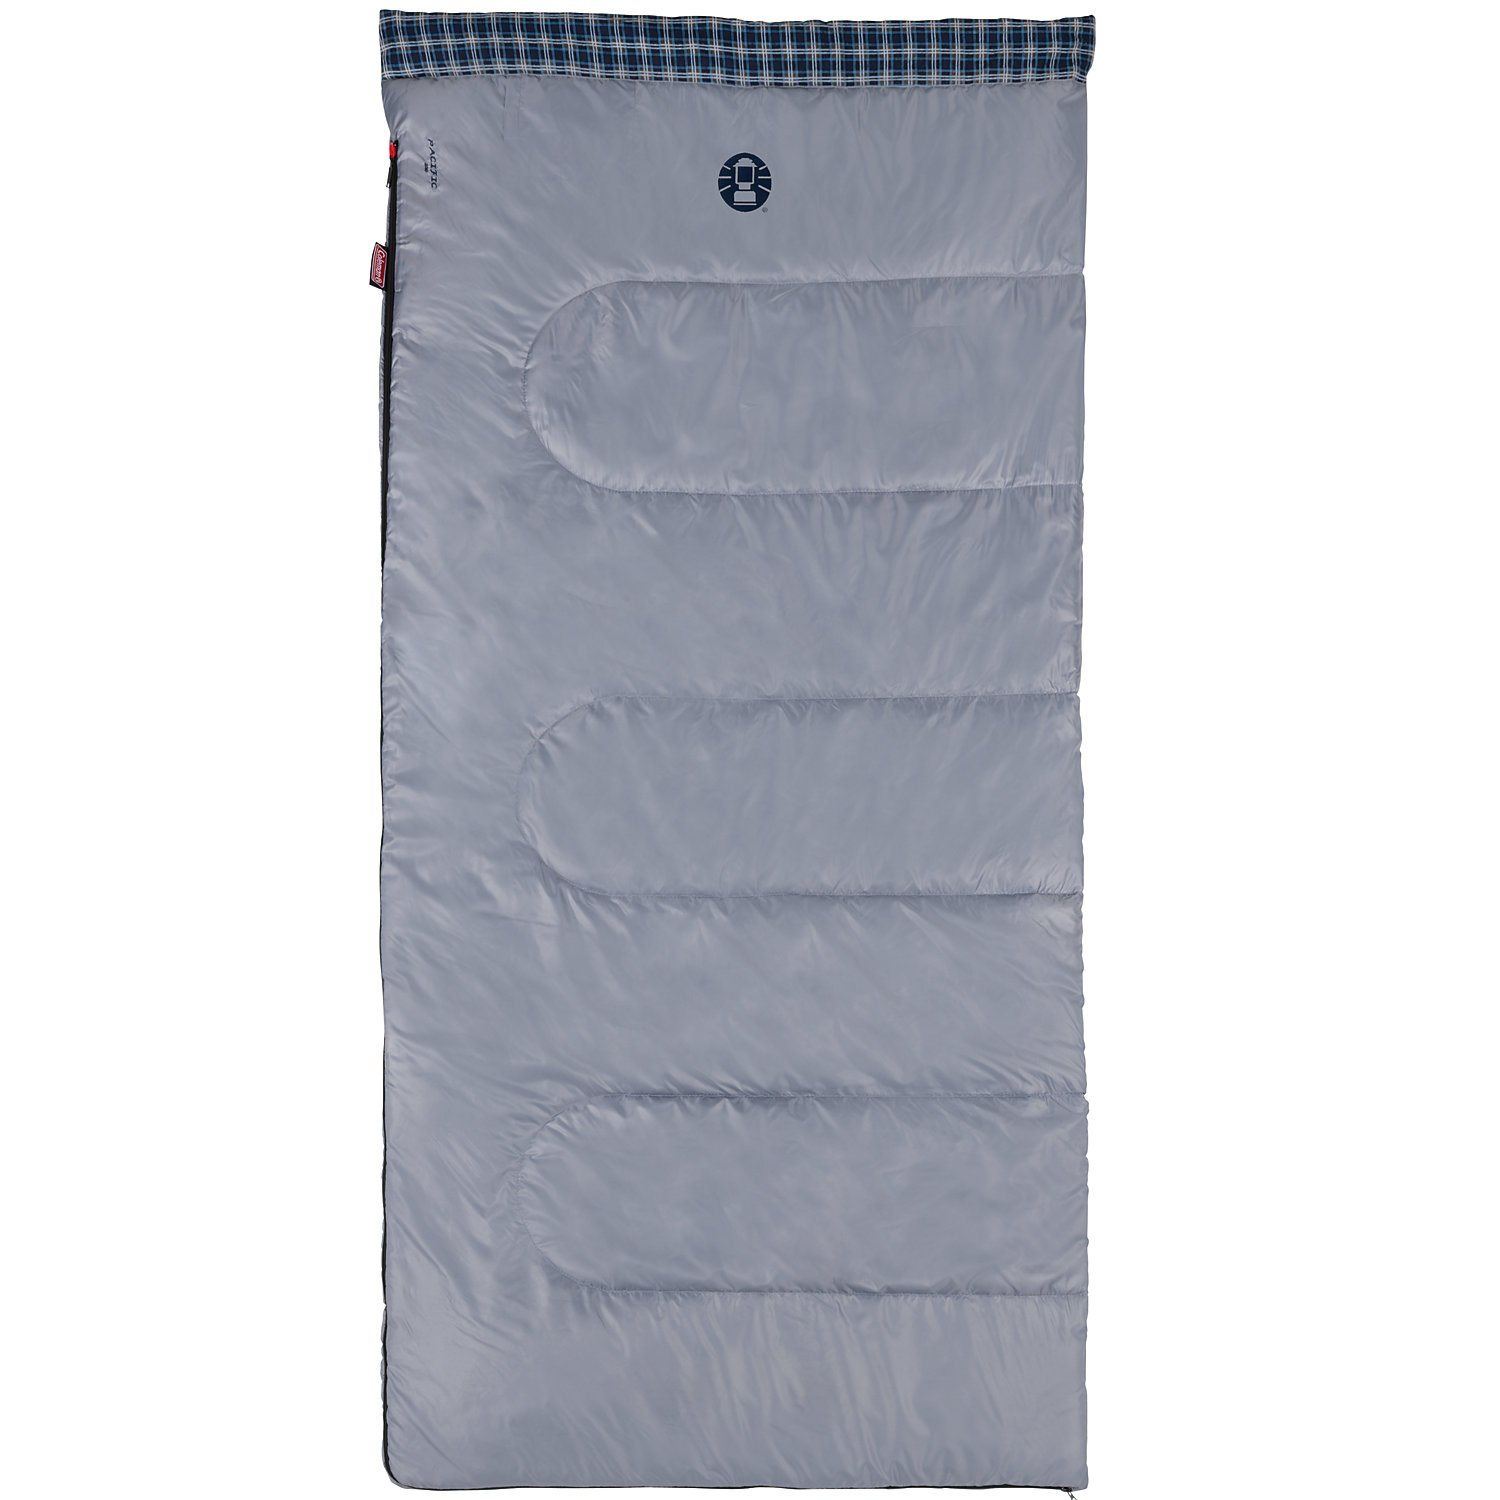 An image related to Coleman Pacific Gray 220 205176 Men's Cotton Flannel Sleeping Bag